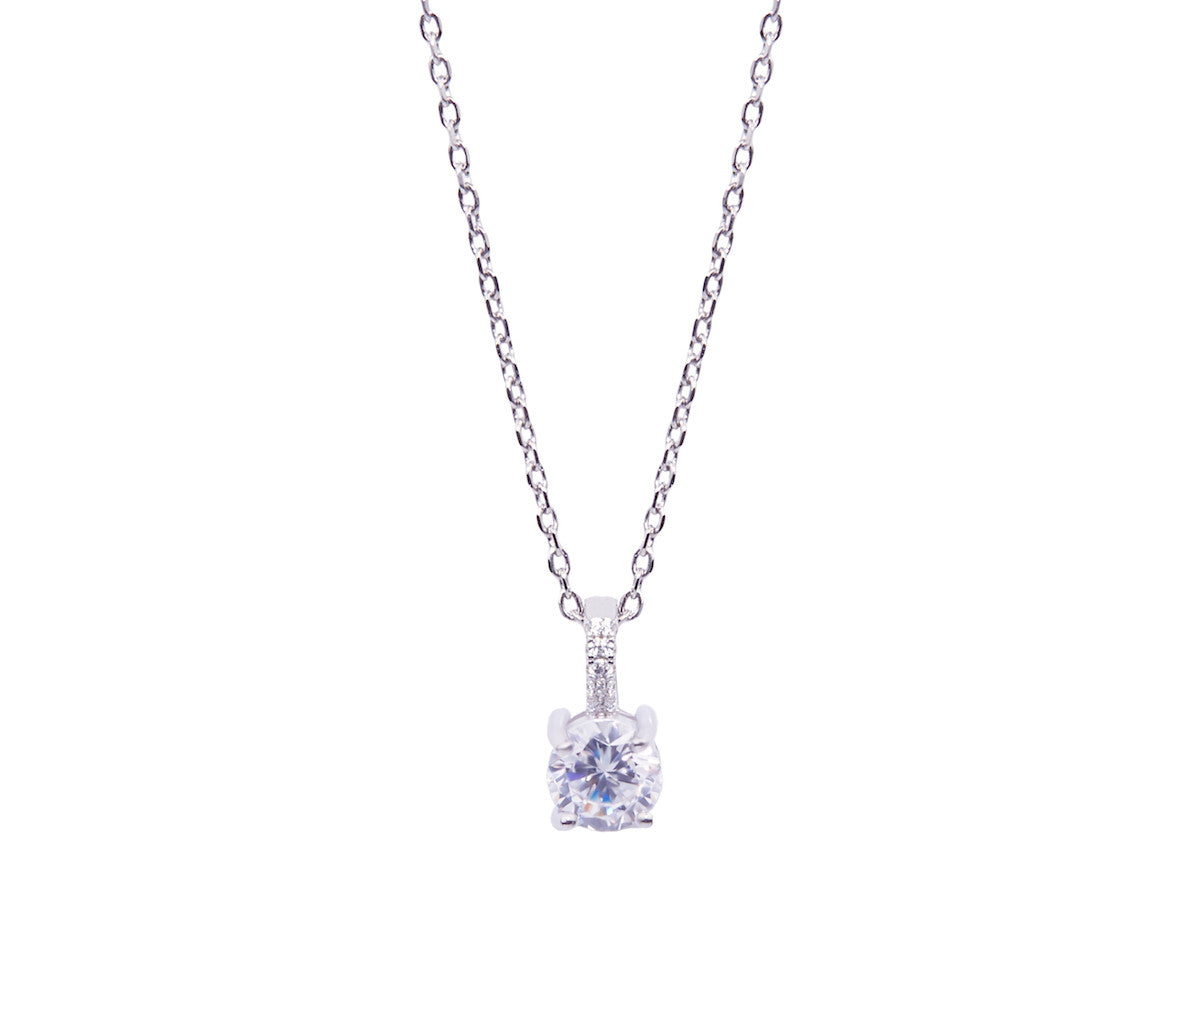 Silver Necklace with 1 carat Diamond-shaped Pendant